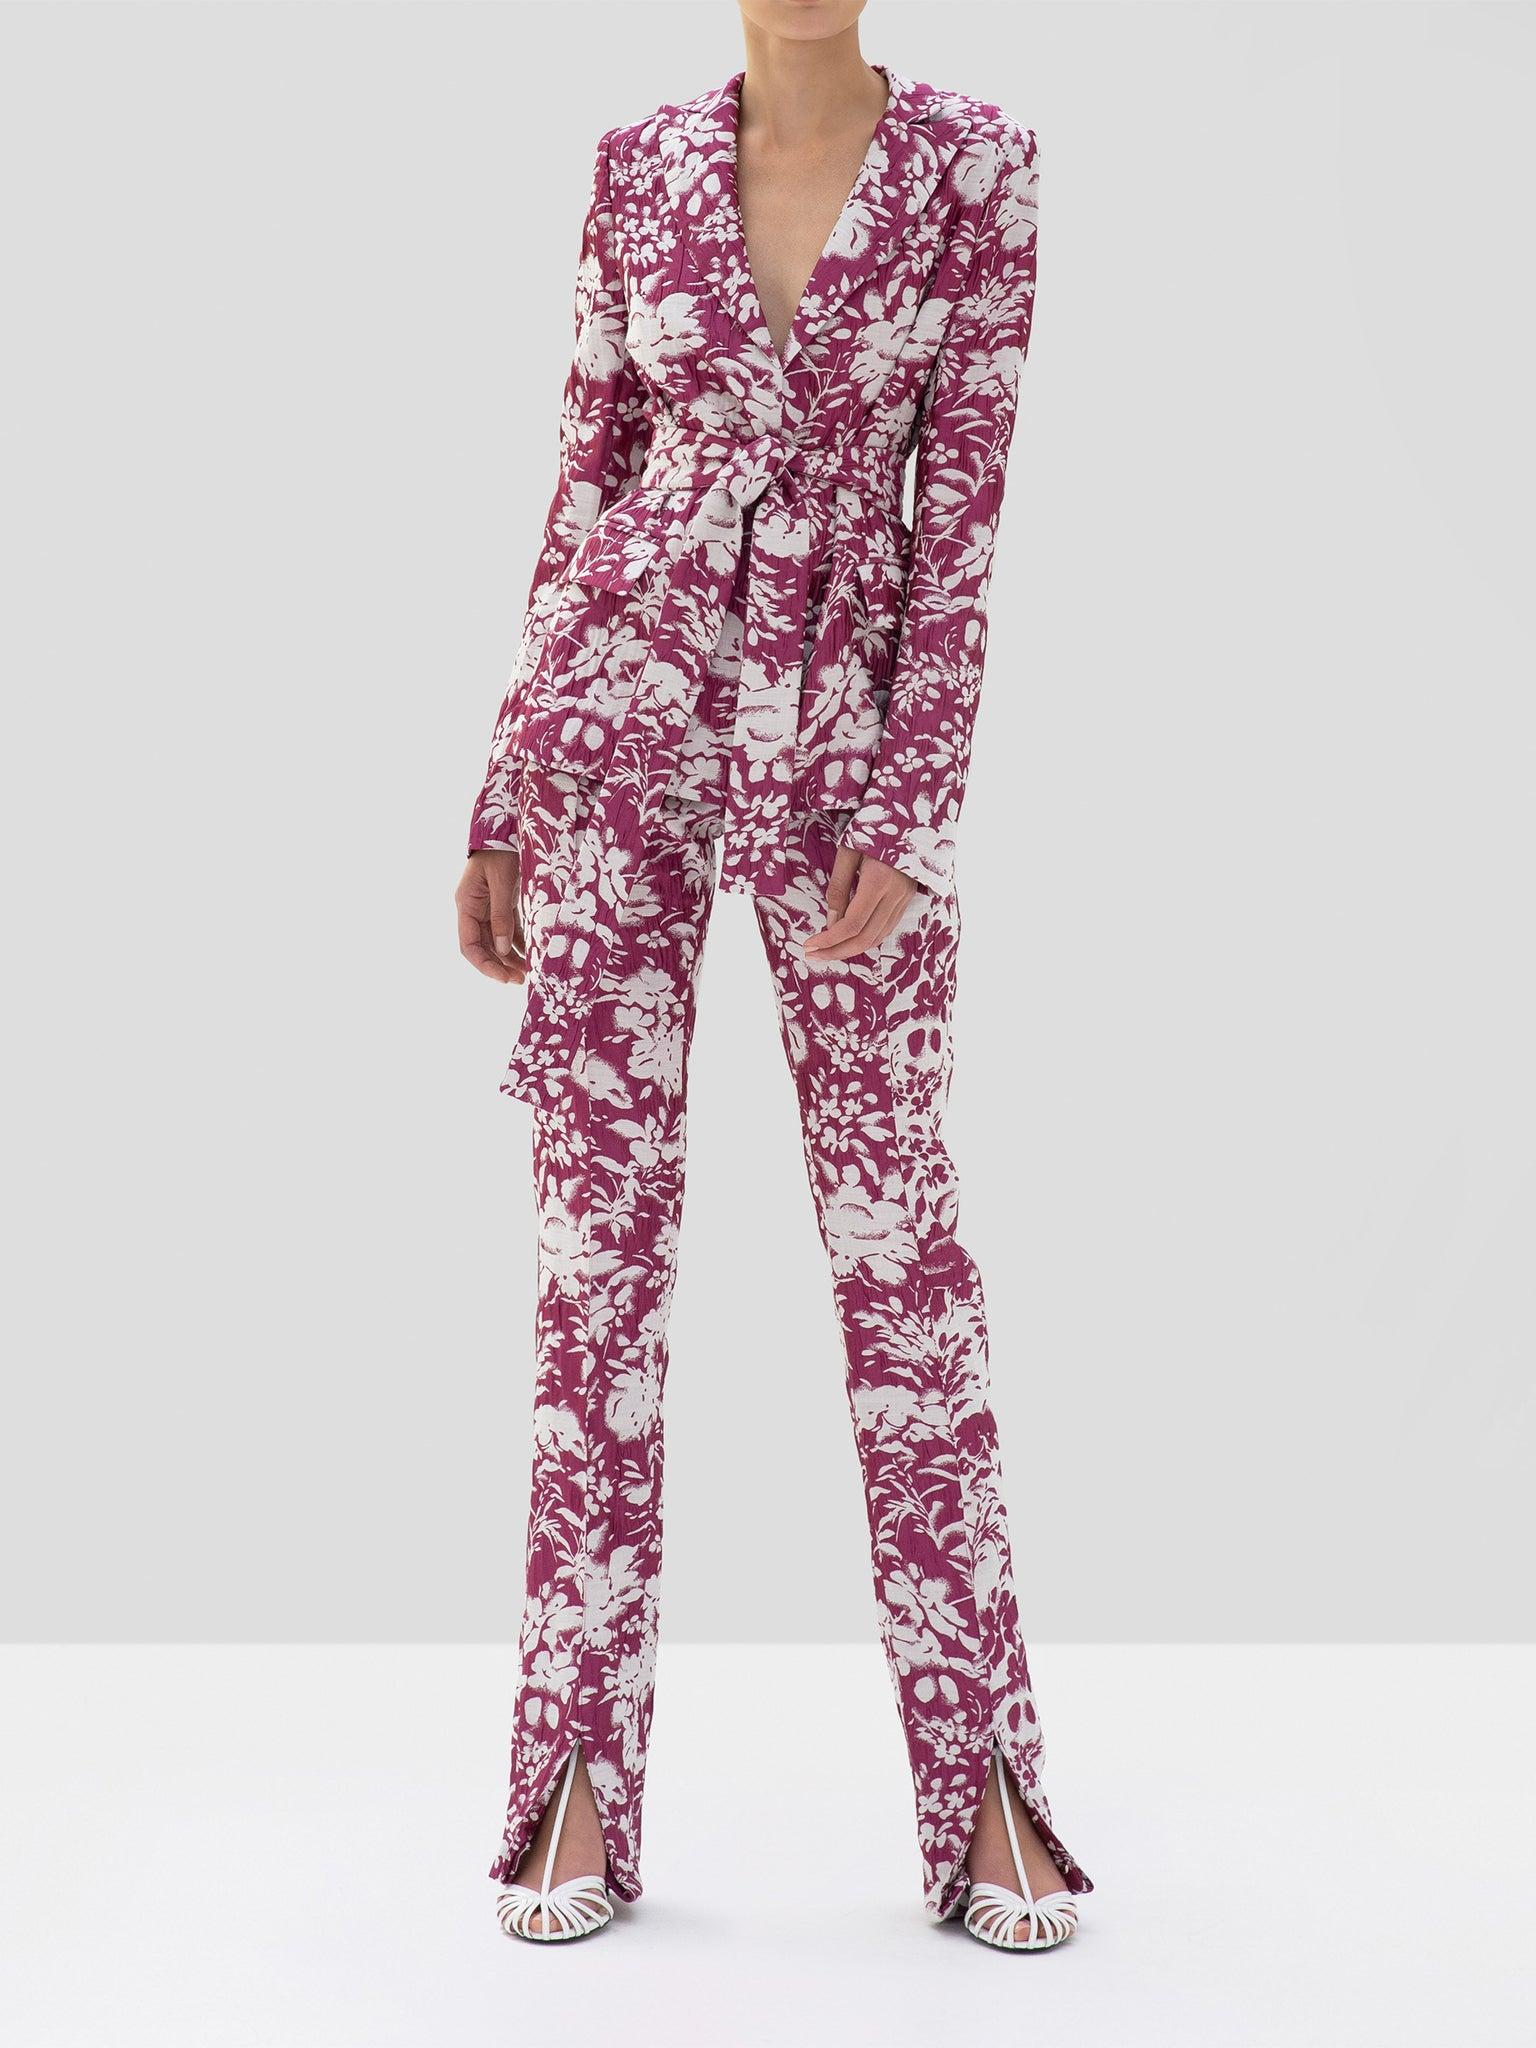 Alexis Raquelle Jacket and Burgos Pant Fuchsia Garden Jacquard from the Fall Winter 2019 Collection